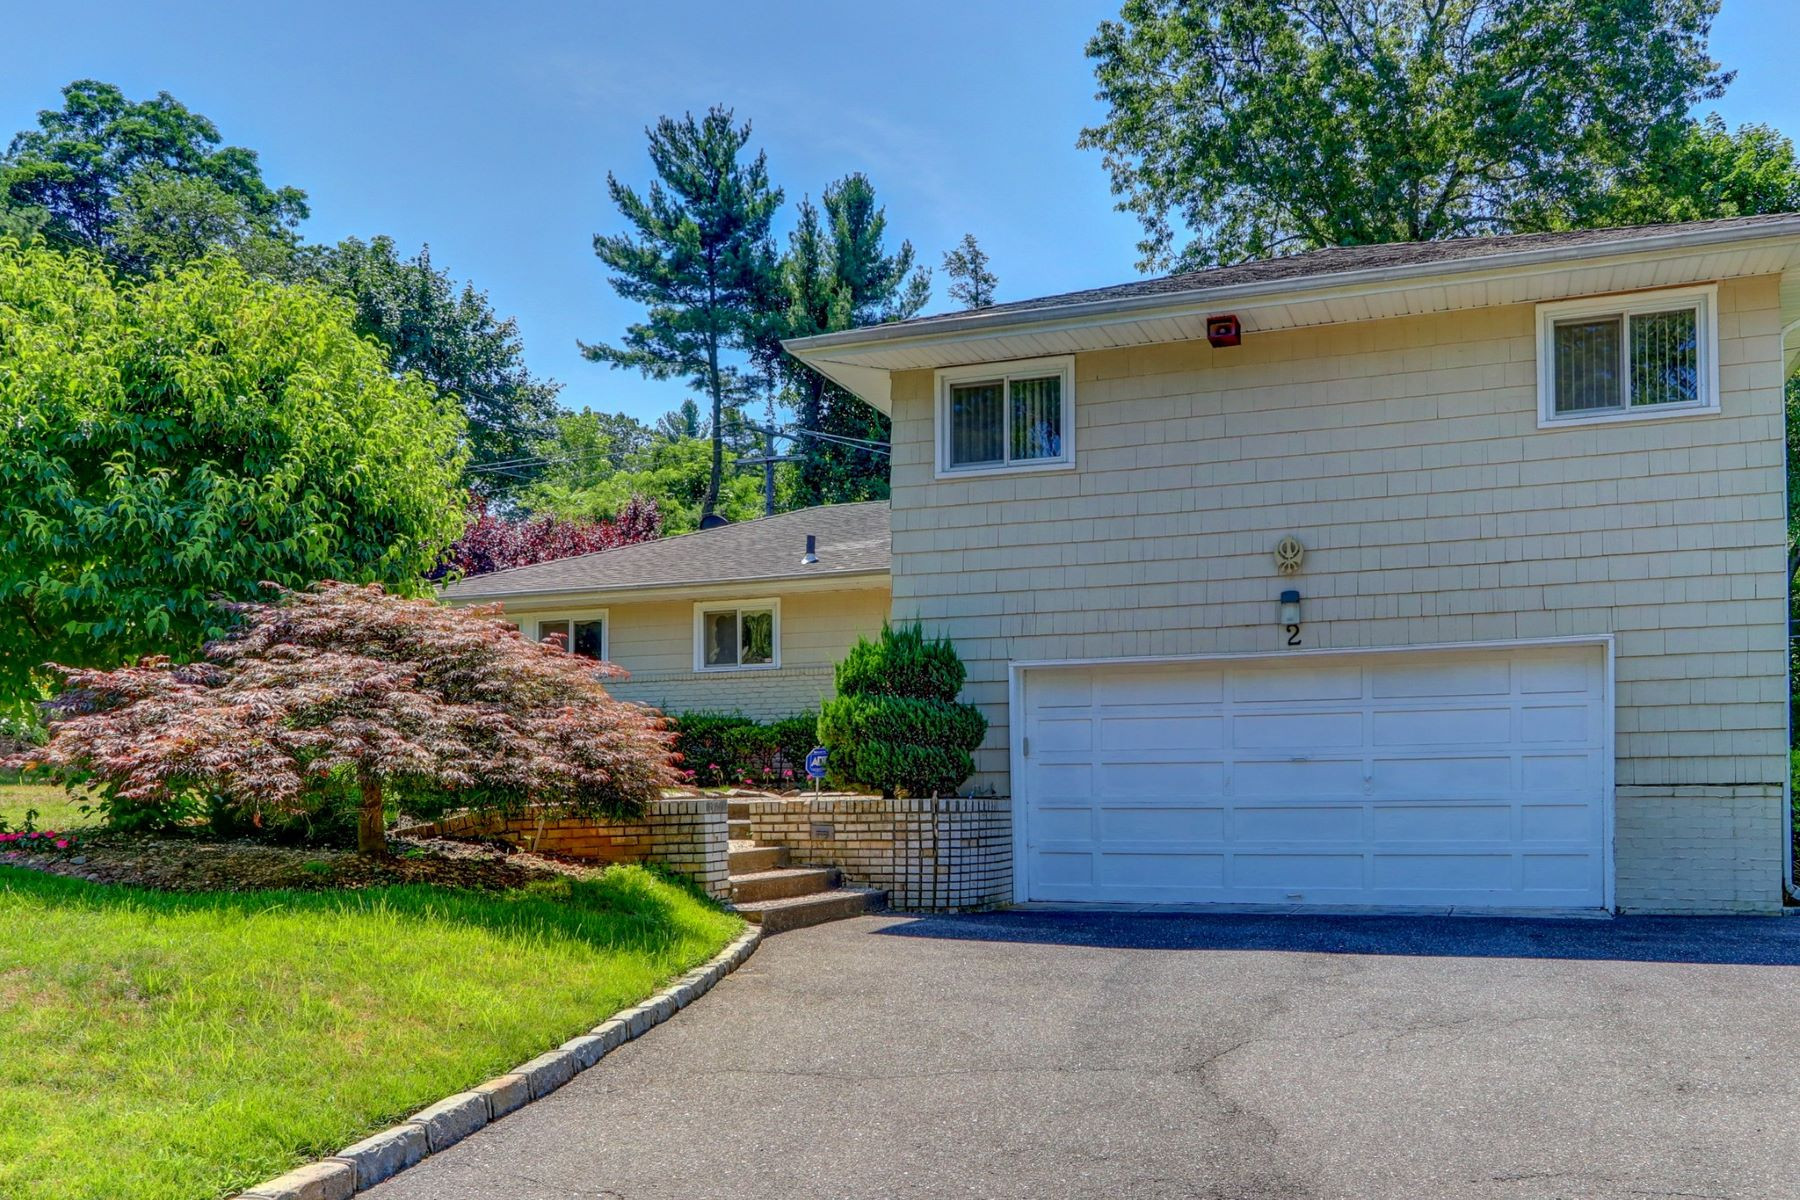 Single Family Homes for Sale at East Hills 2 Vanad Dr East Hills, New York 11576 United States